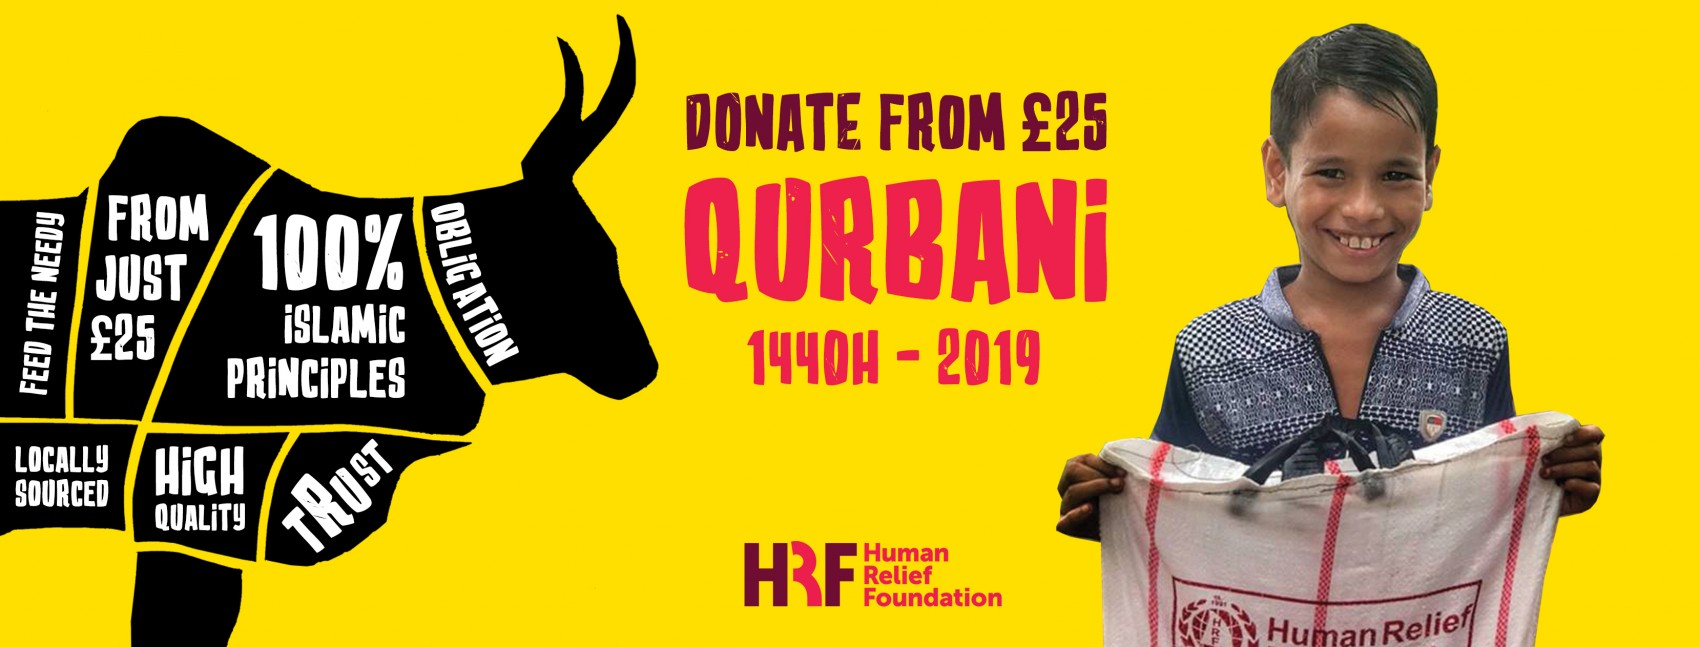 Qurbani | Donate to Our Qurbani Appeal Today - HRF